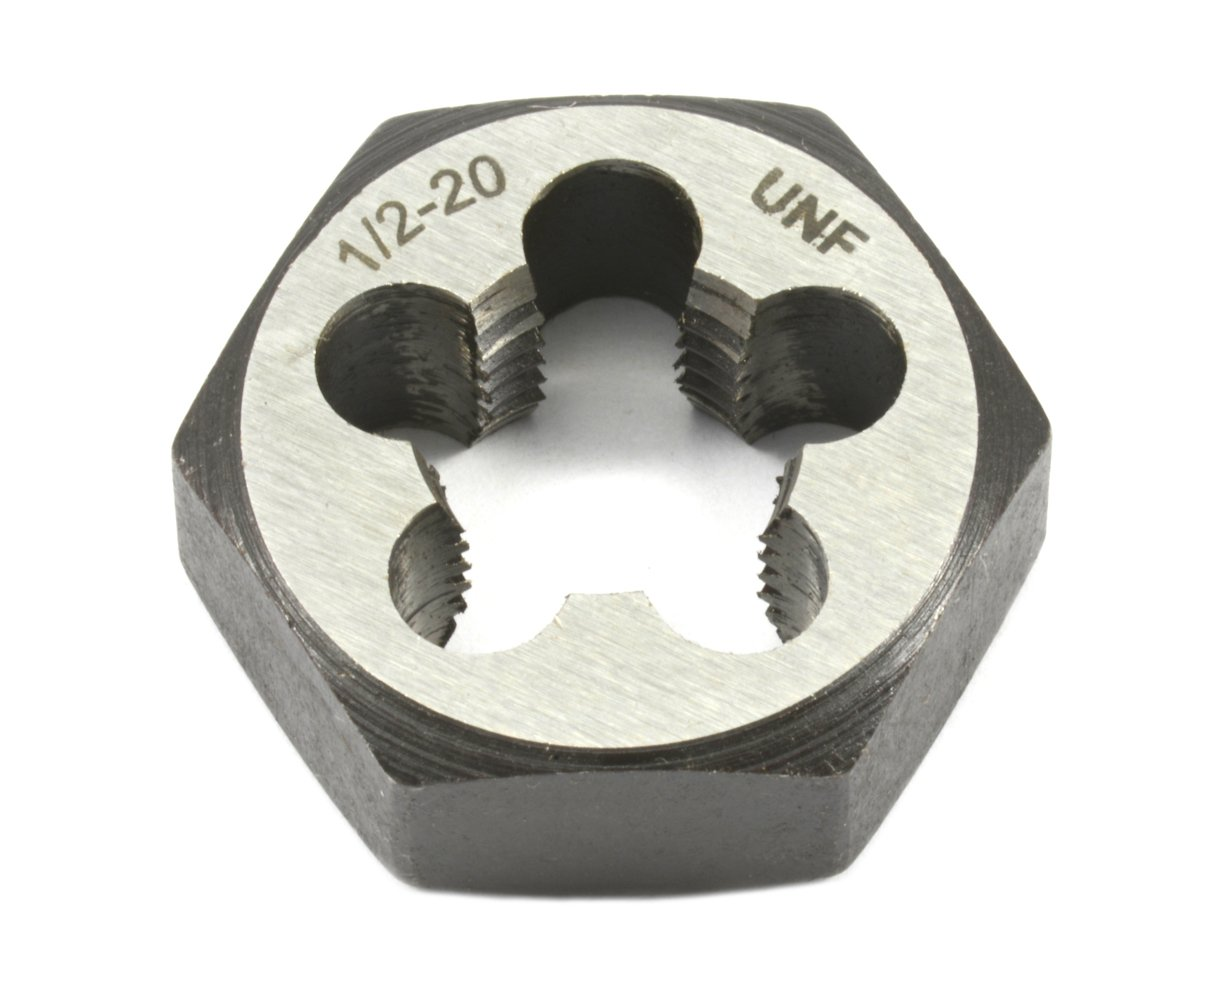 Forney 21182 Pipe Die Industrial Pro UNF Hex Re-Threading Carbon Steel, Right Hand, 1/2-Inch-by-20